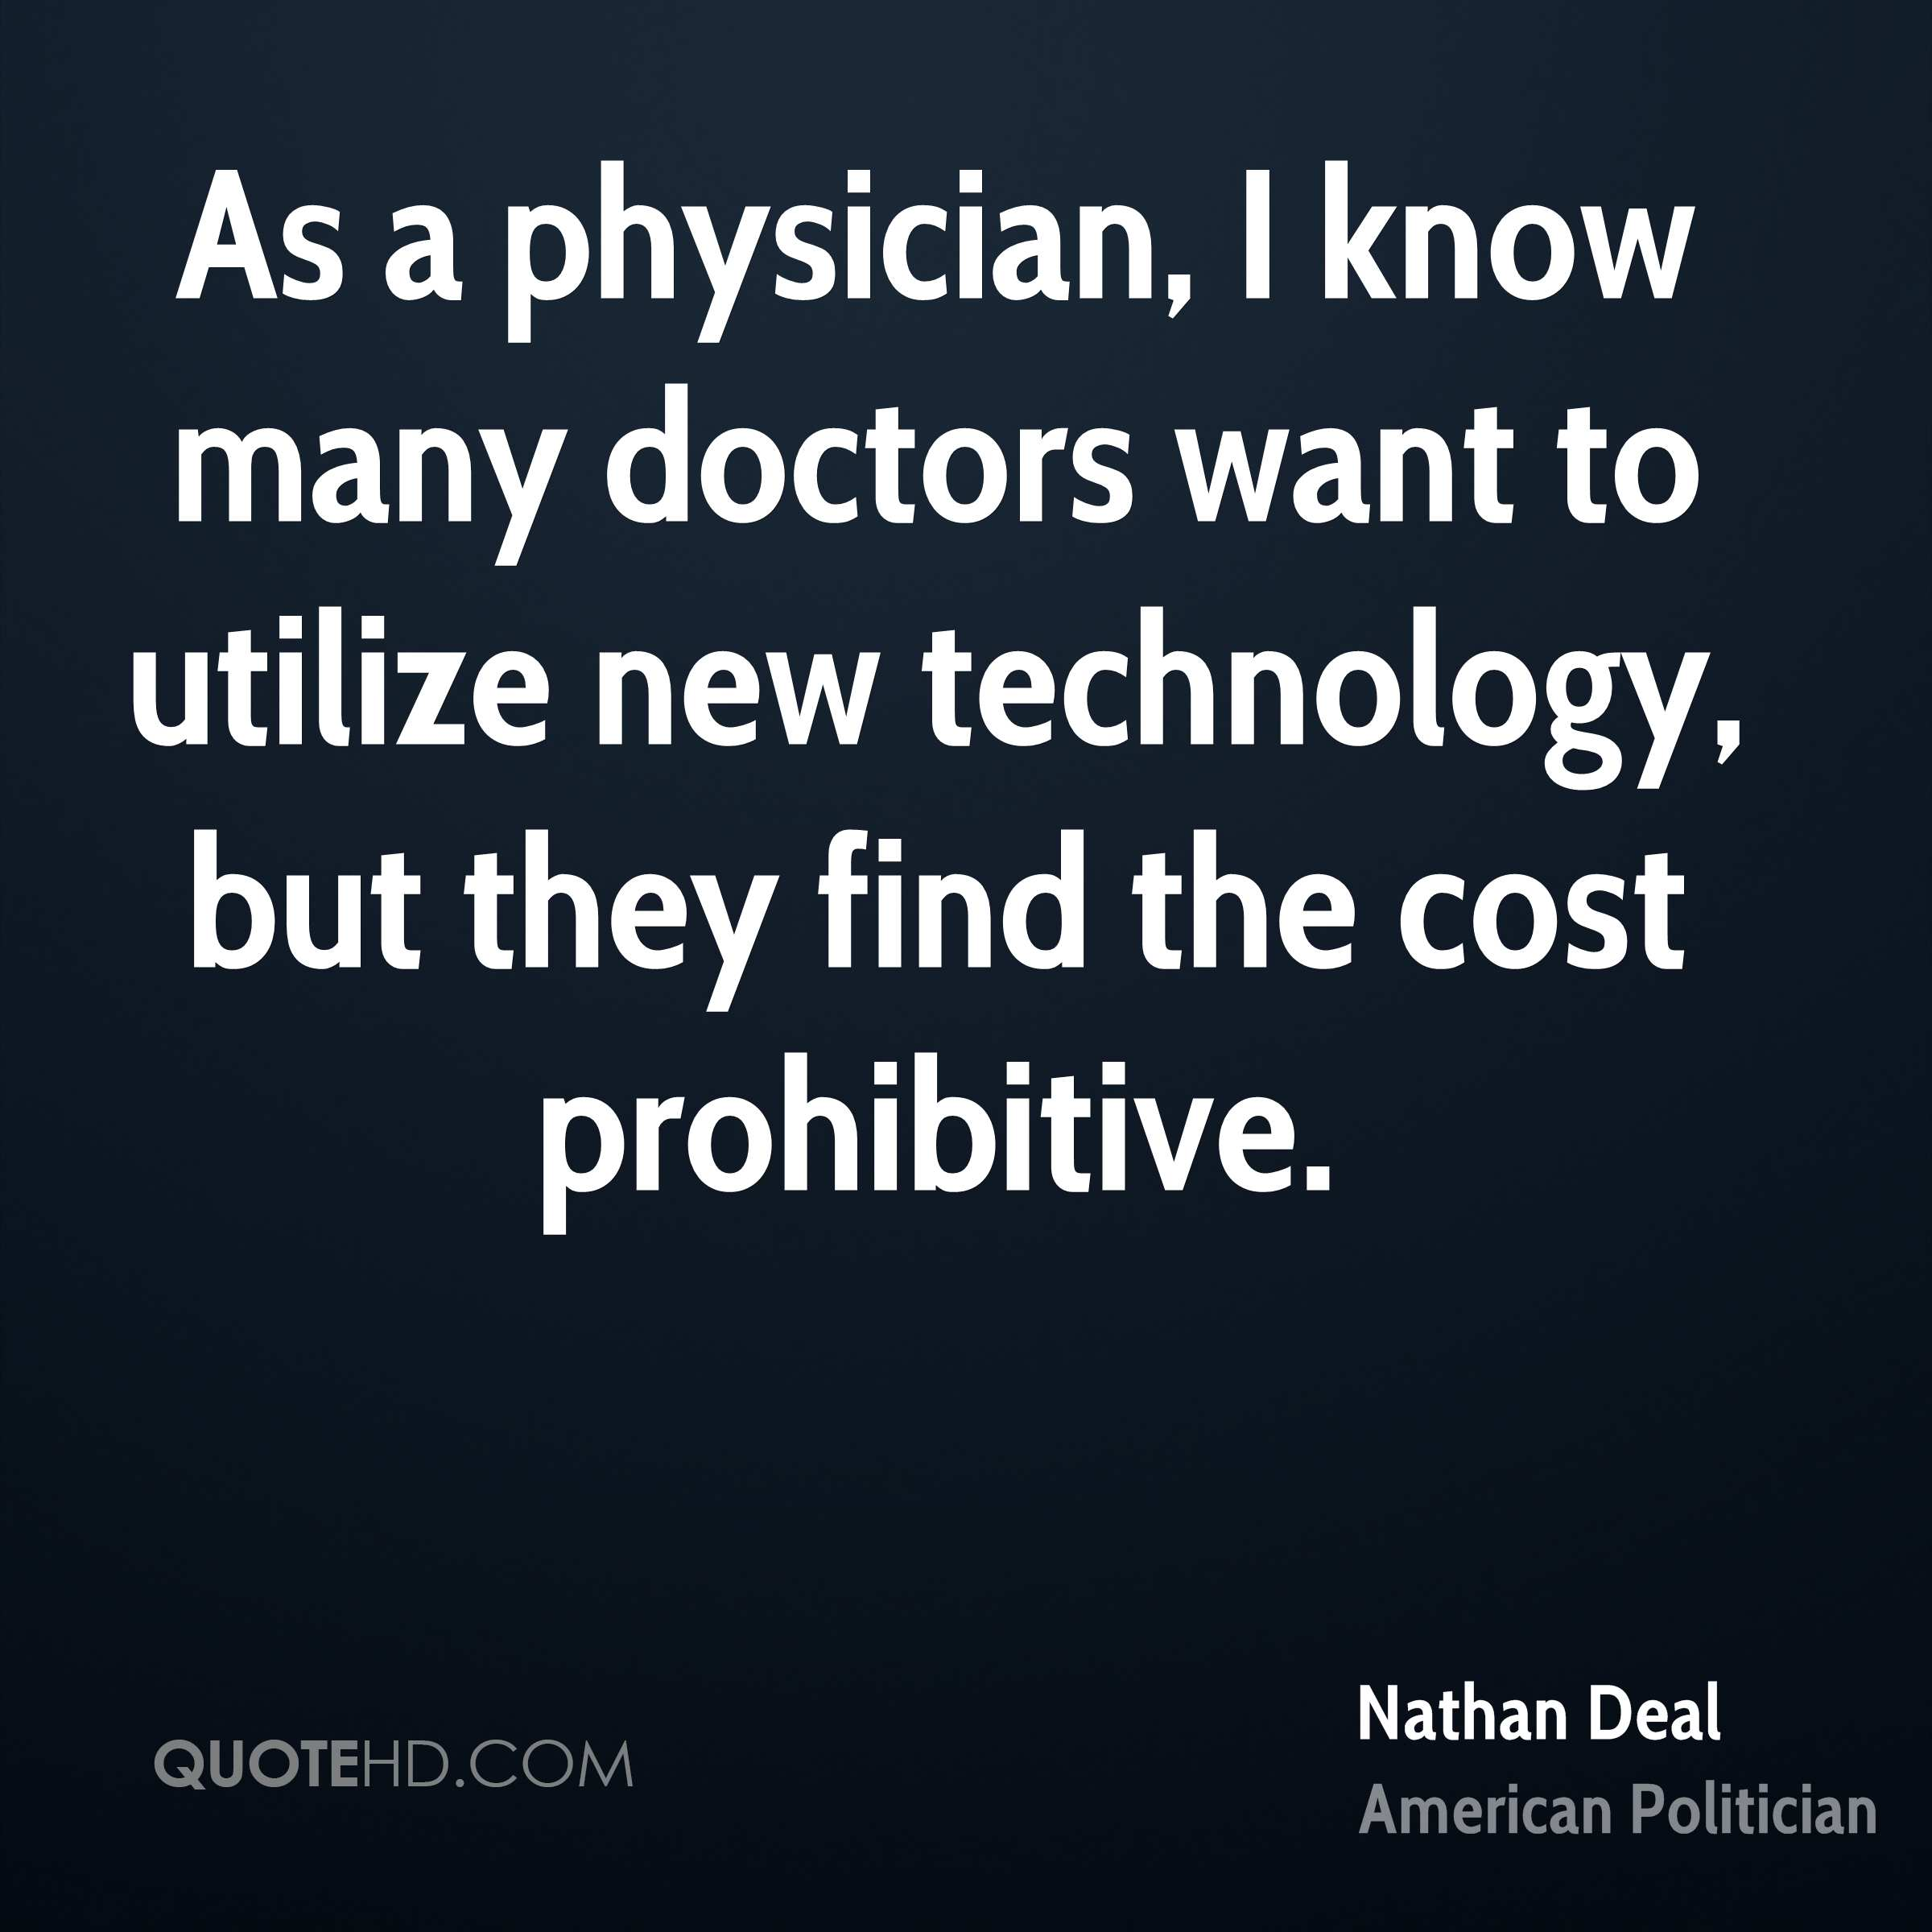 As a physician, I know many doctors want to utilize new technology, but they find the cost prohibitive.